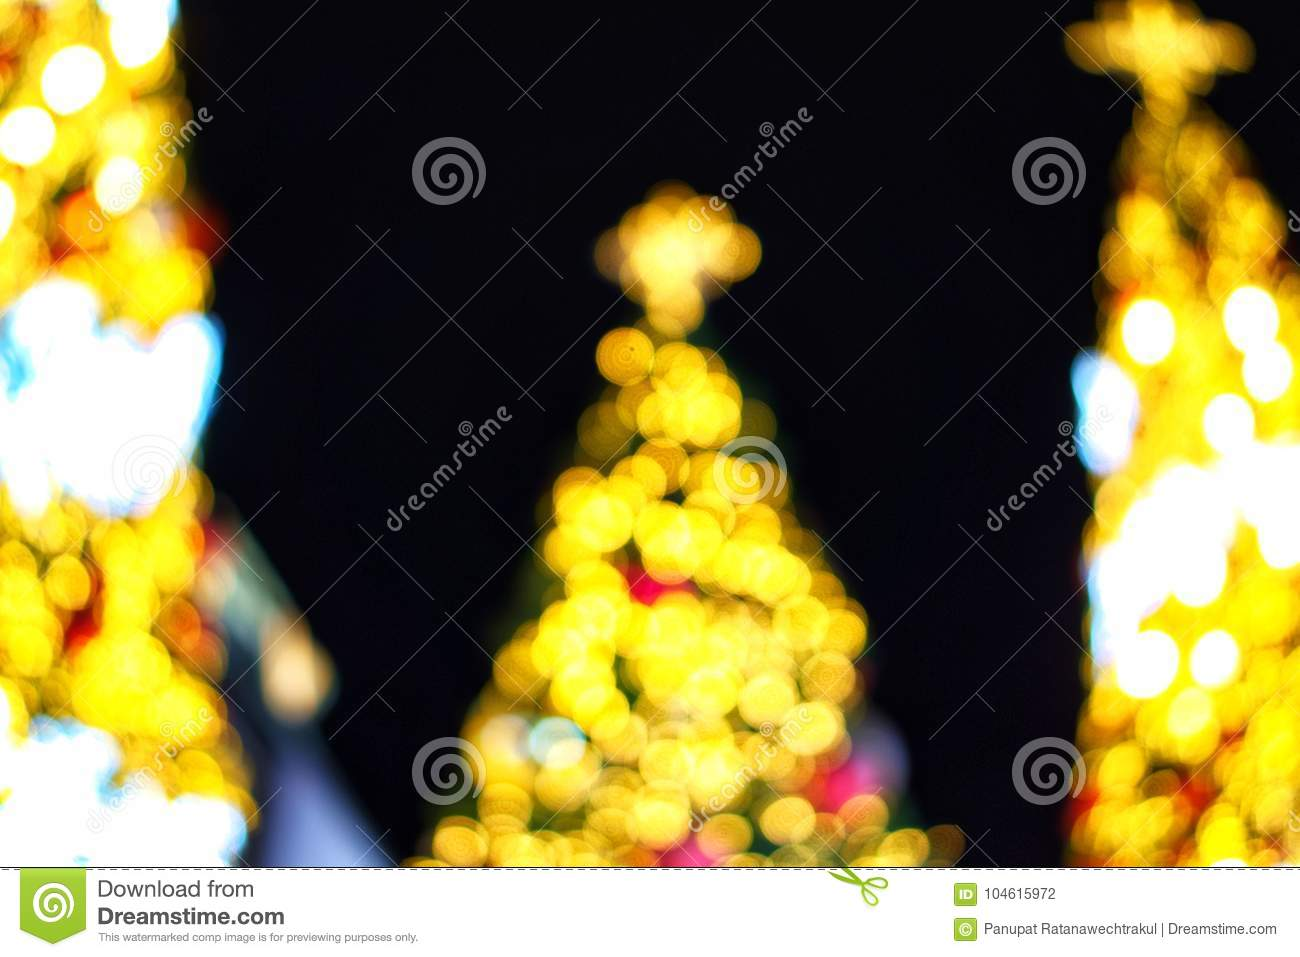 christmas wallpaper and new year festival stock photo - image of